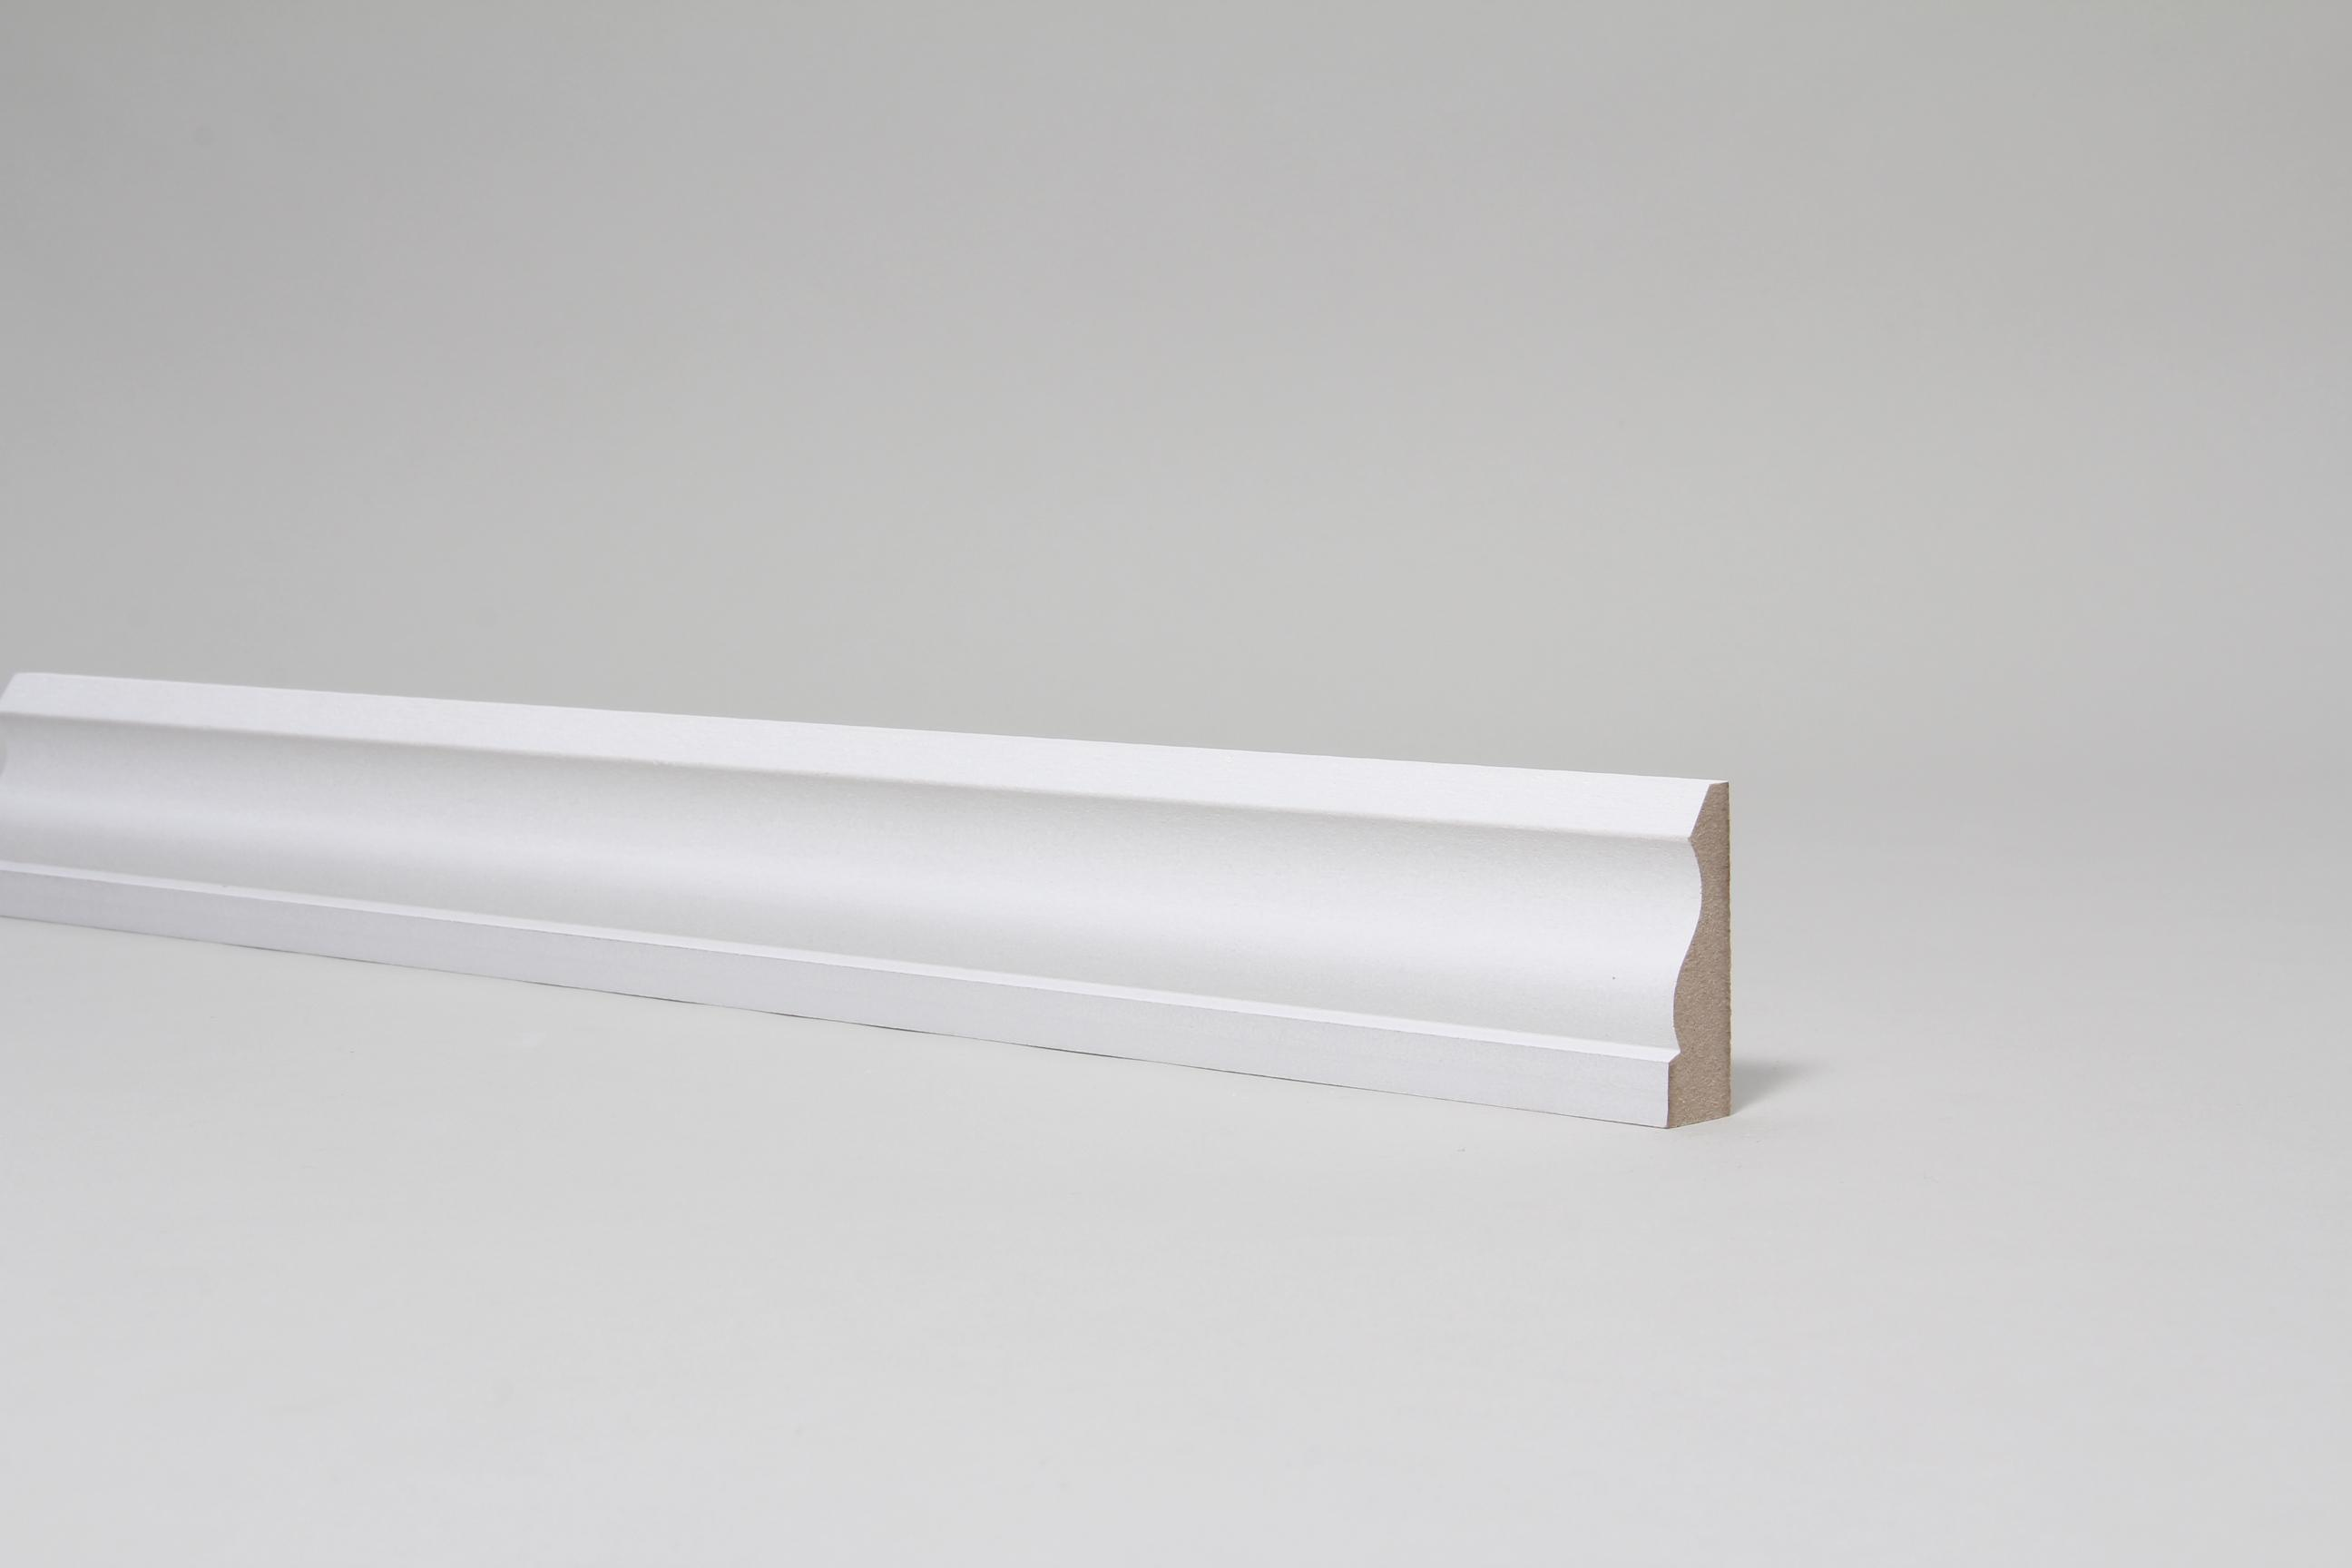 Ogee 18mm x 57mm x 4.4 Mtr Primed